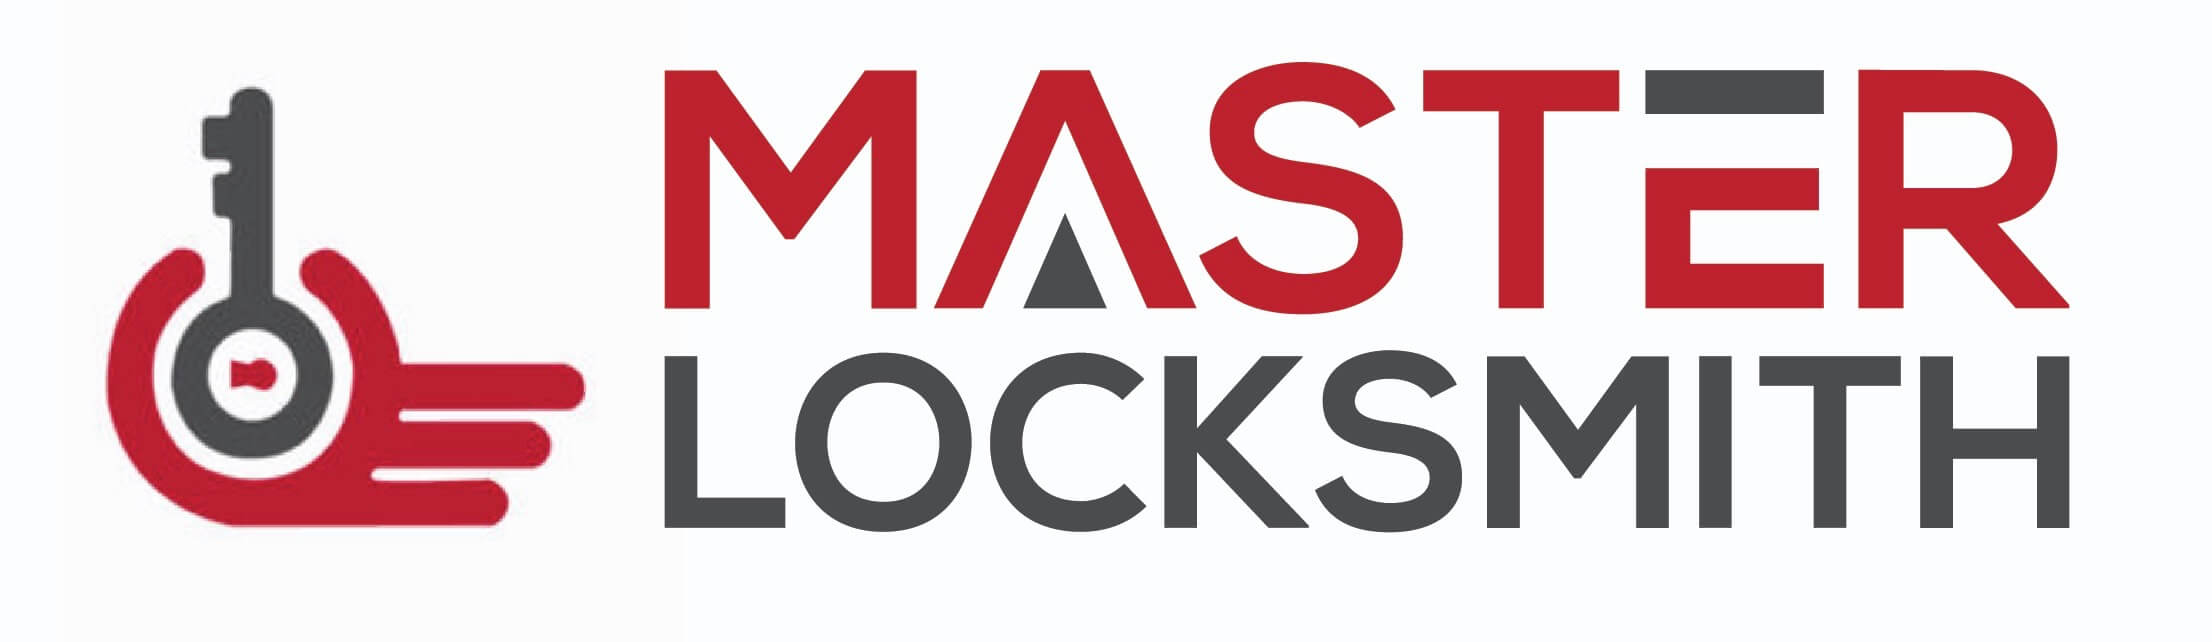 Master Locksmith Is Providing Local Locksmith Services To Customers In St. Louis & St. Charles, MO During Covid19